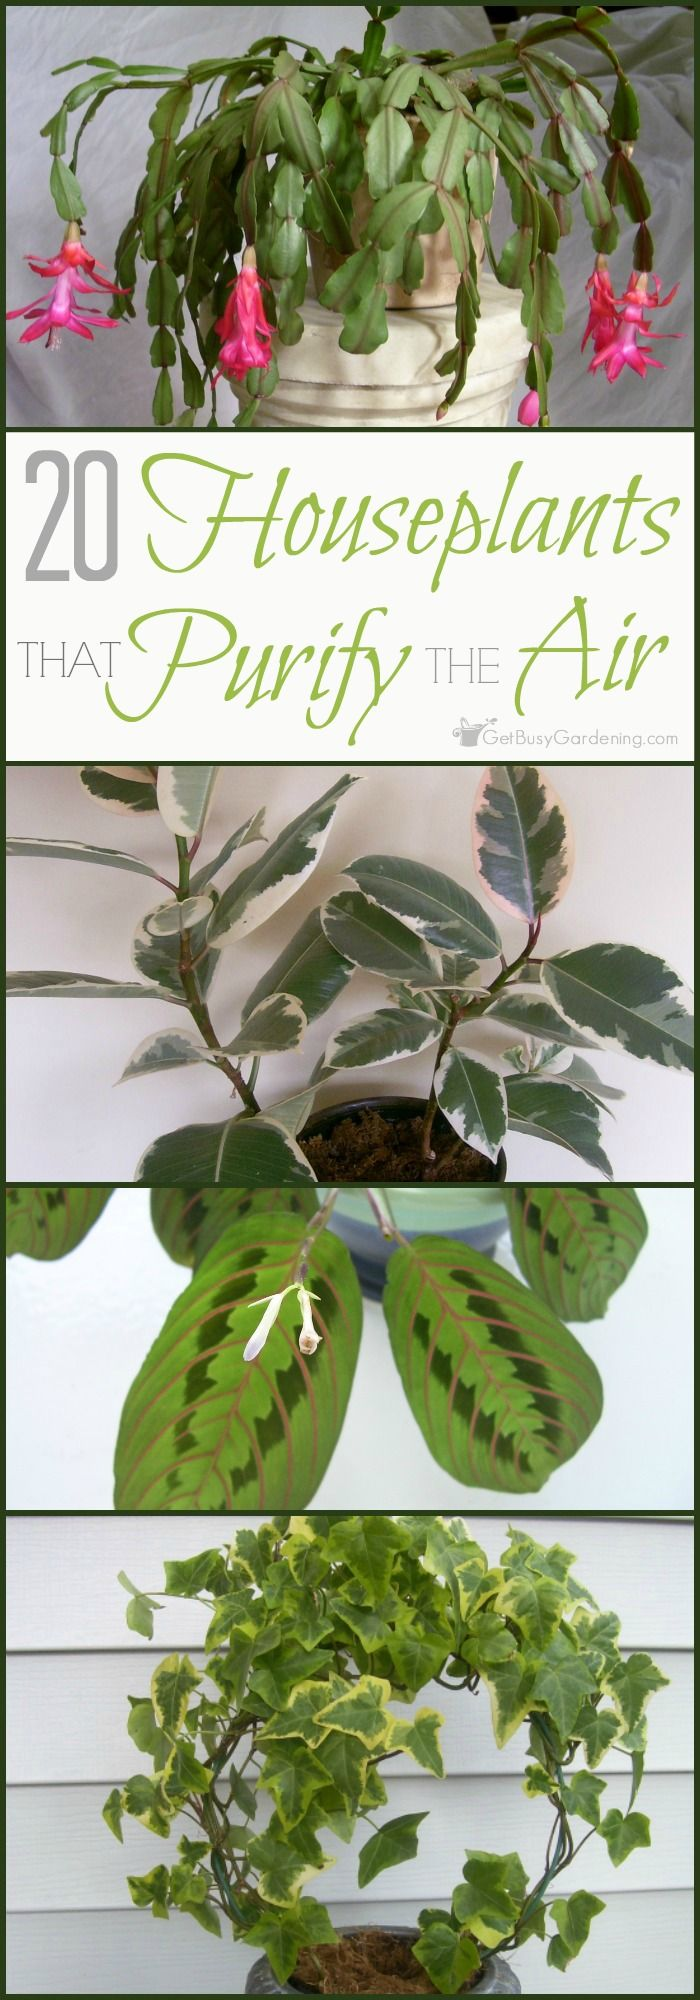 Plants are fantastic natural air filters, but some are better at cleaning the air than others. Here's a list of 20 of the best plants for indoor air.